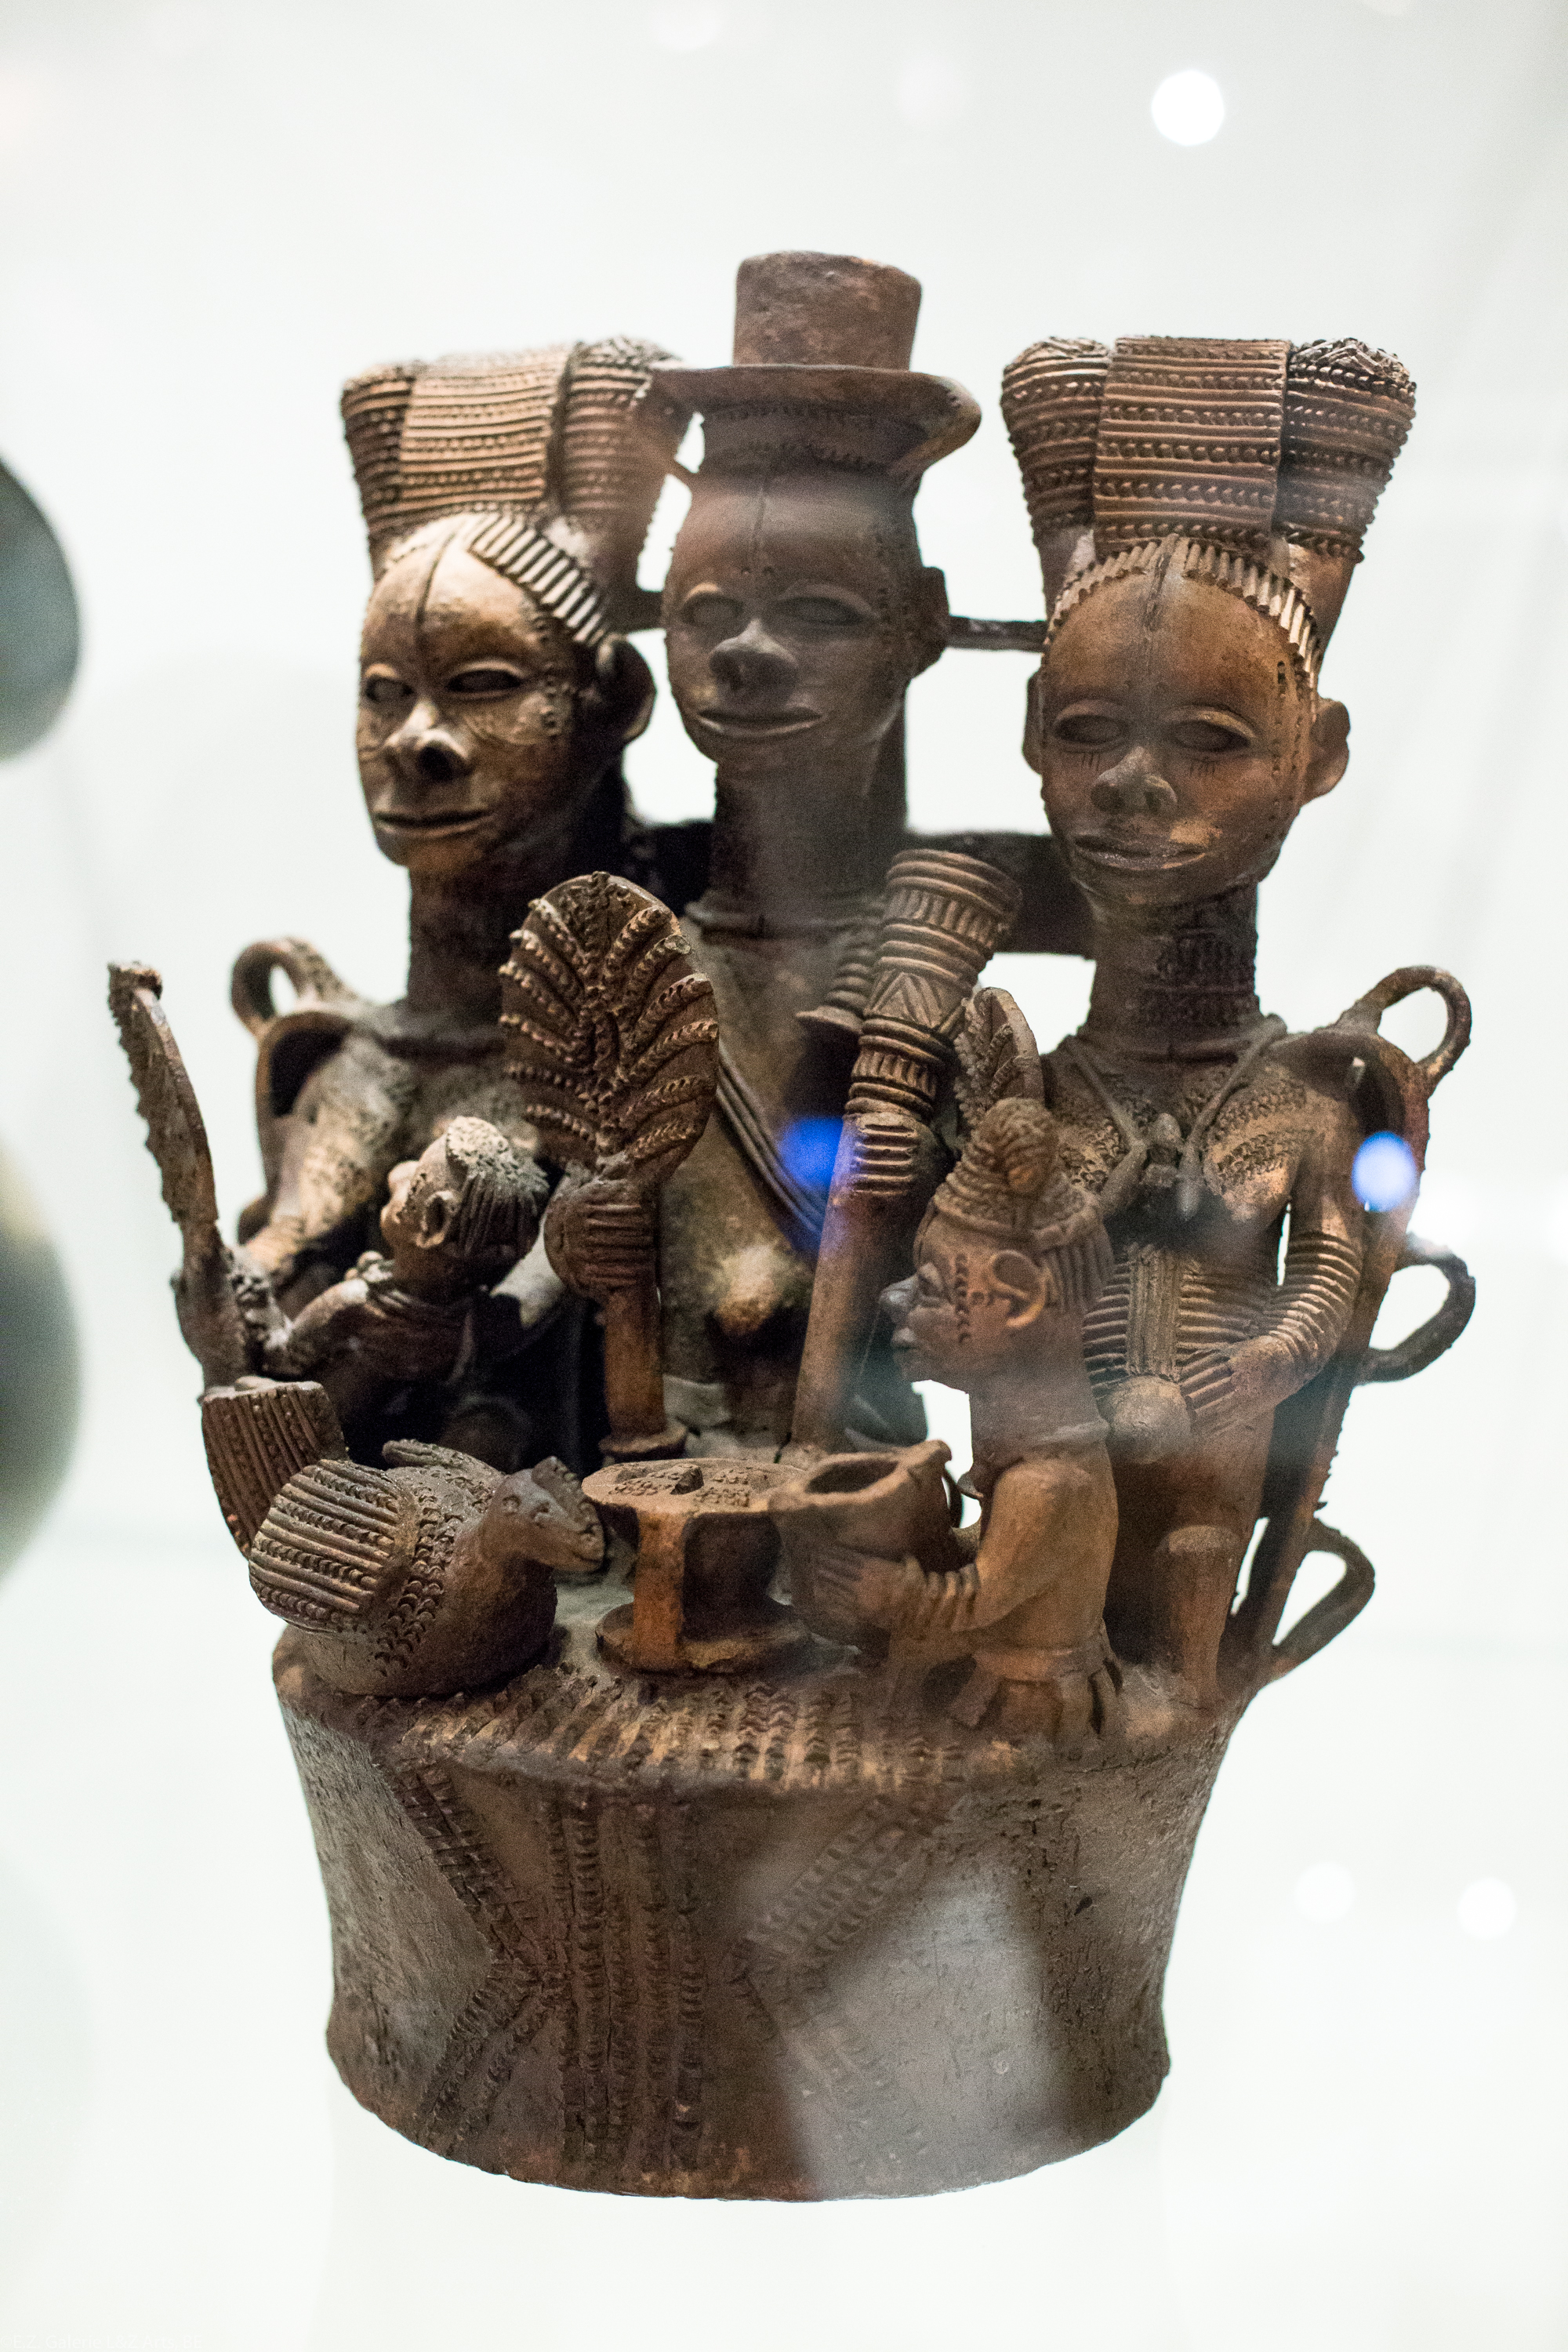 art-tribal-africain-londres-british-museum-sainsbury-galleries-bronze-benin-statue-masque-ivoire-africa-london-bini-edo-galerie-lz-arts-belgique-france-6.jpg